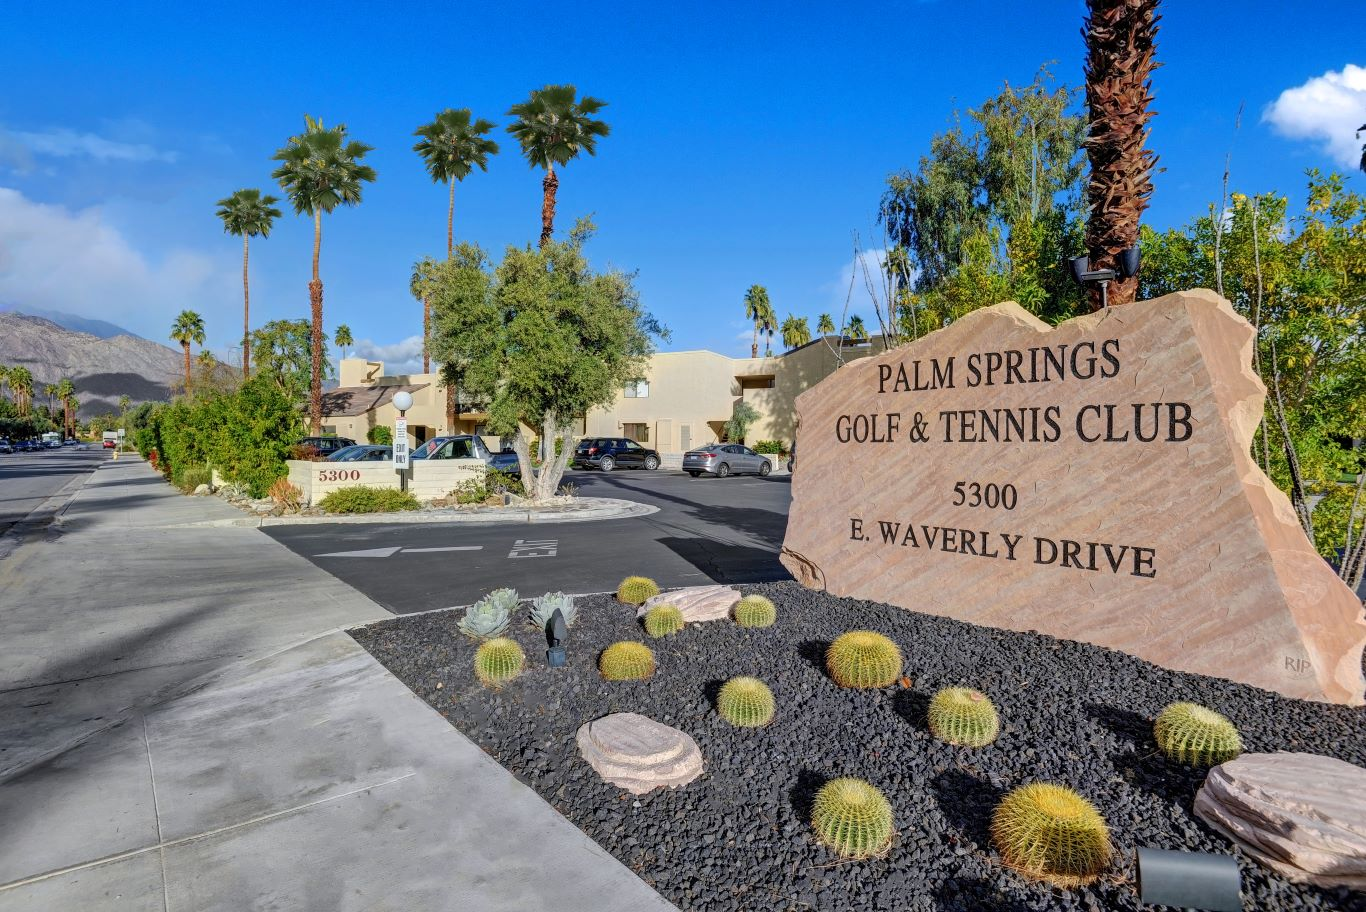 Entrance to Palm Springs Golf & Tennis